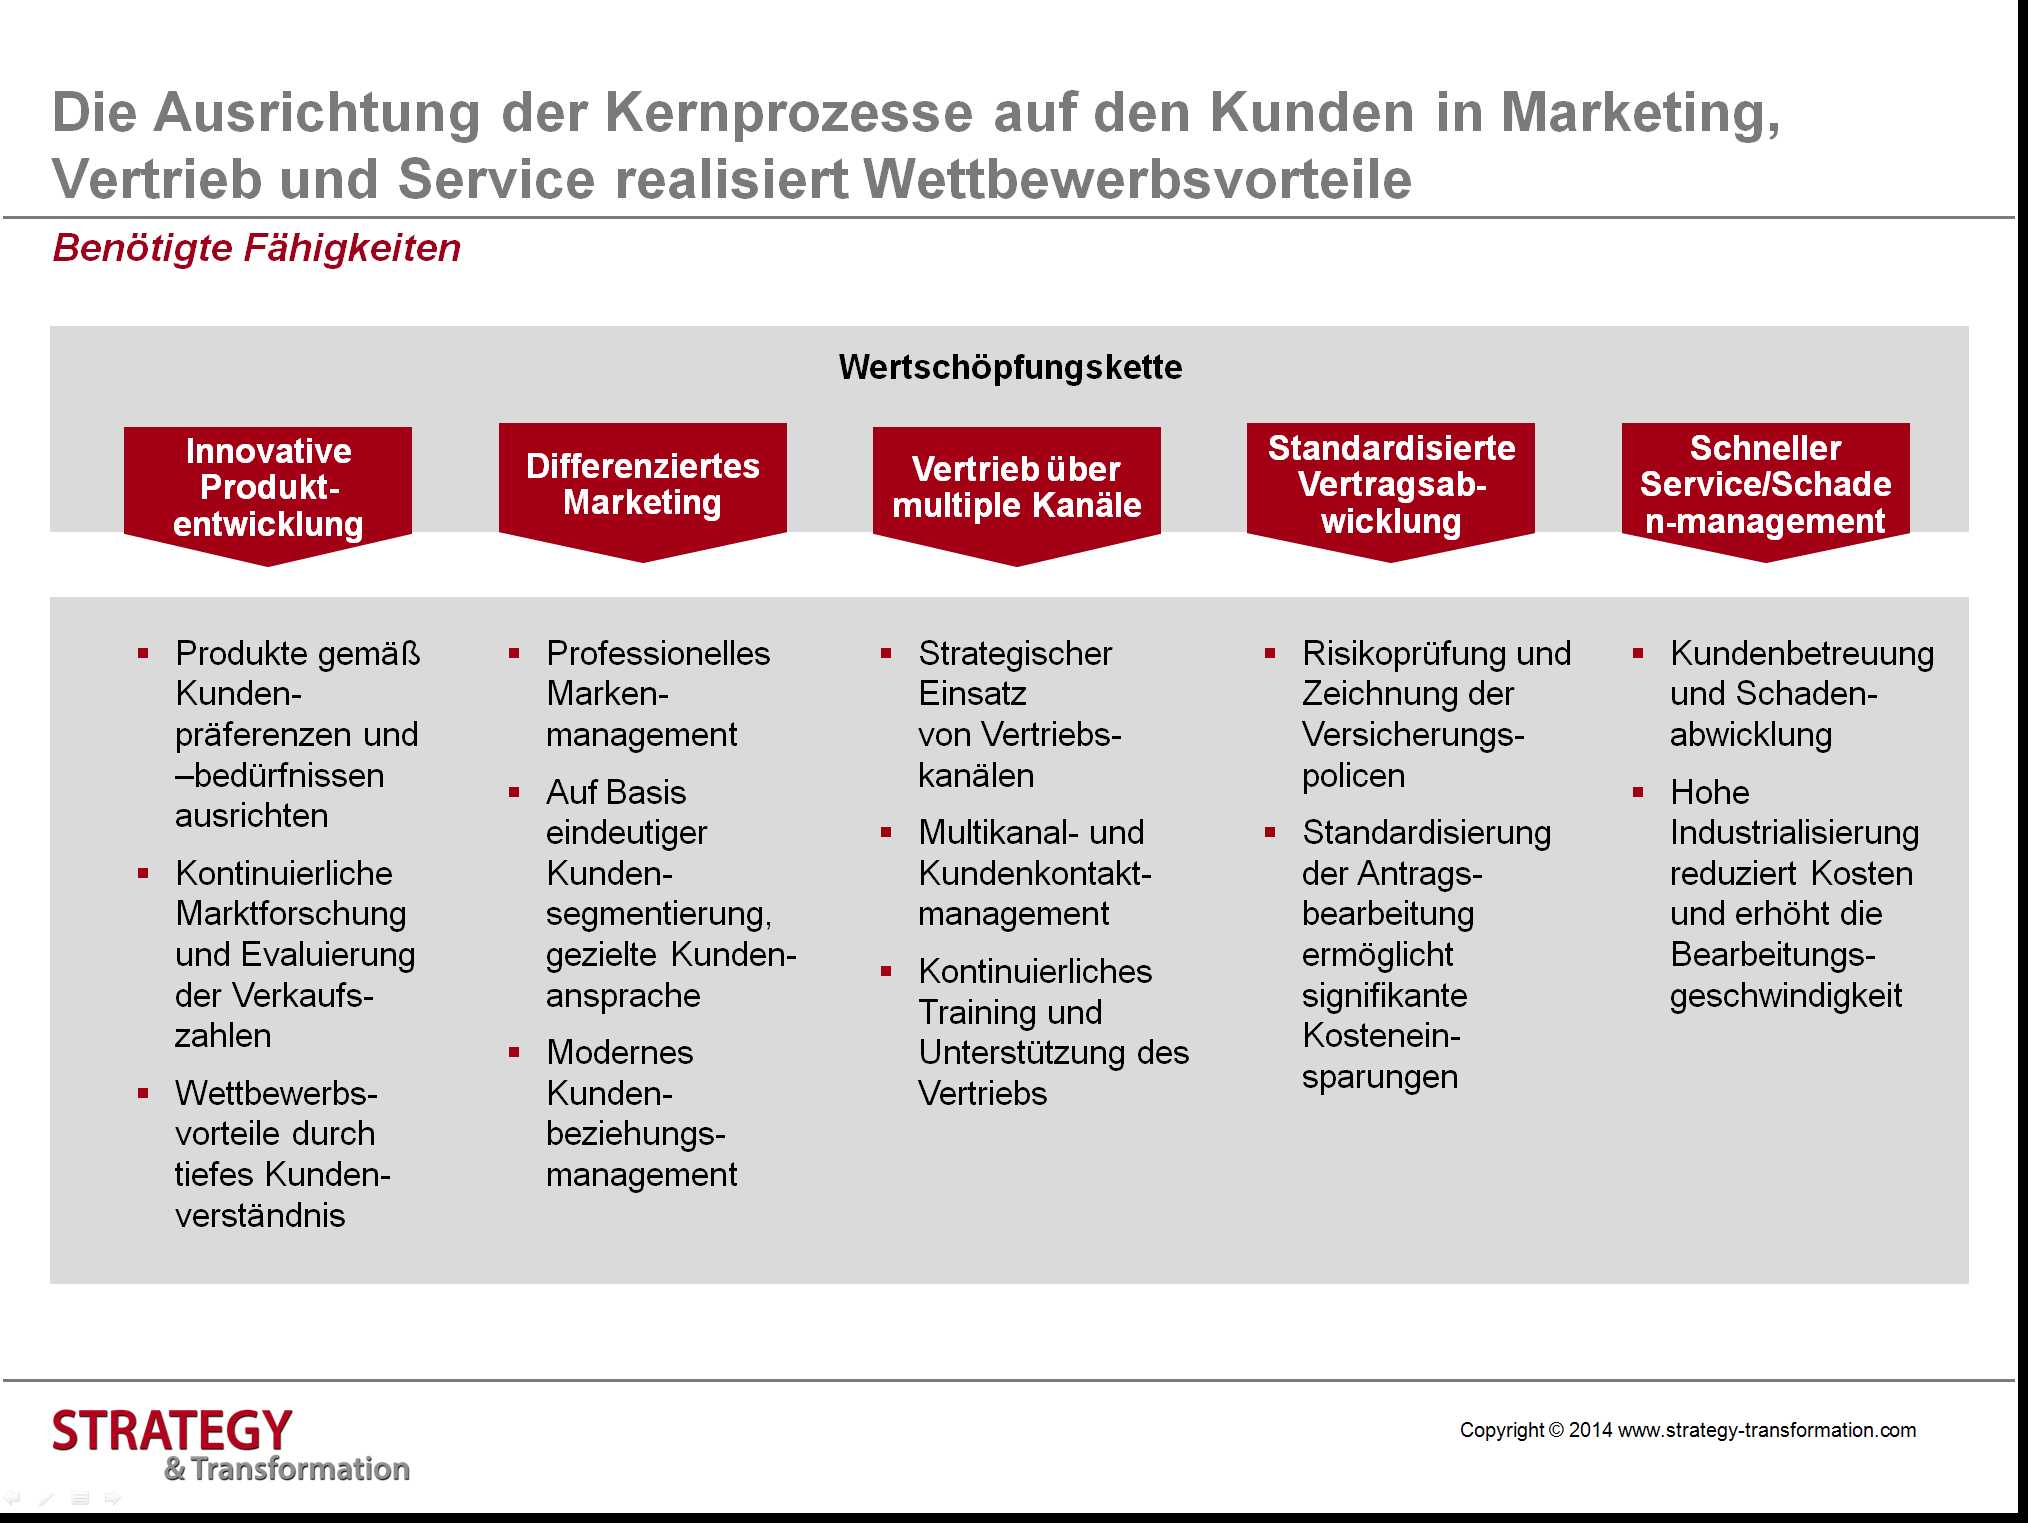 Transformation Practice Worksheet and Die Ausrichtung Der Kernprozesse Auf Den Kunden In Marketing